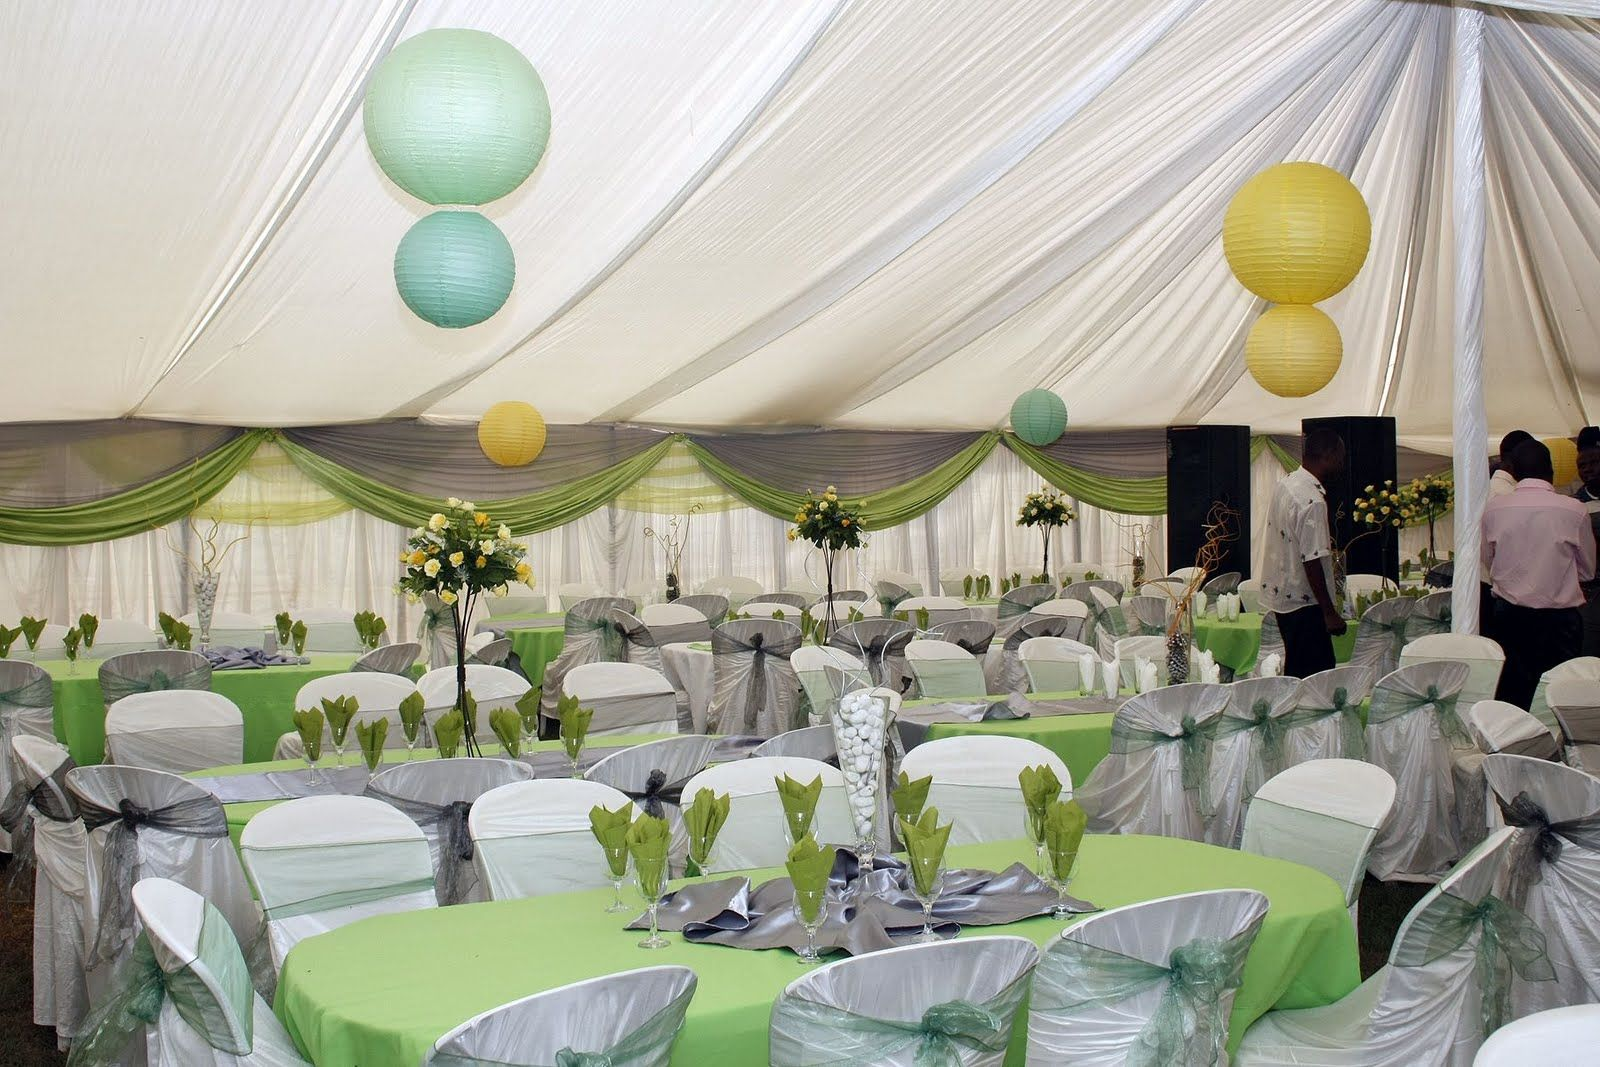 Garden wedding reception decoration ideas how to make for Wedding venue decoration ideas pictures